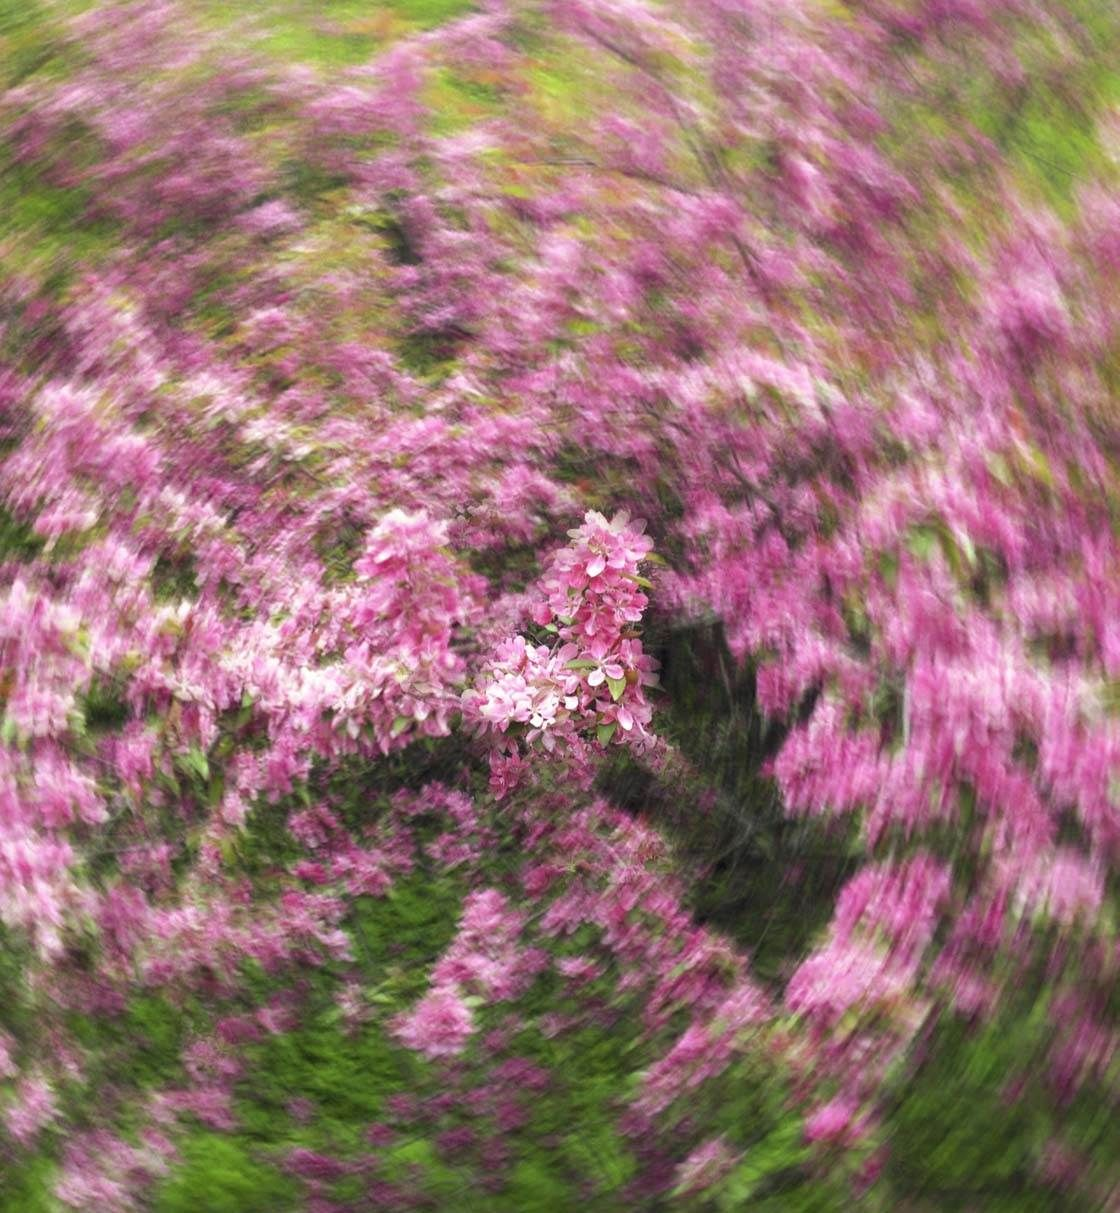 How to create beautiful slow shutter abstract photos on